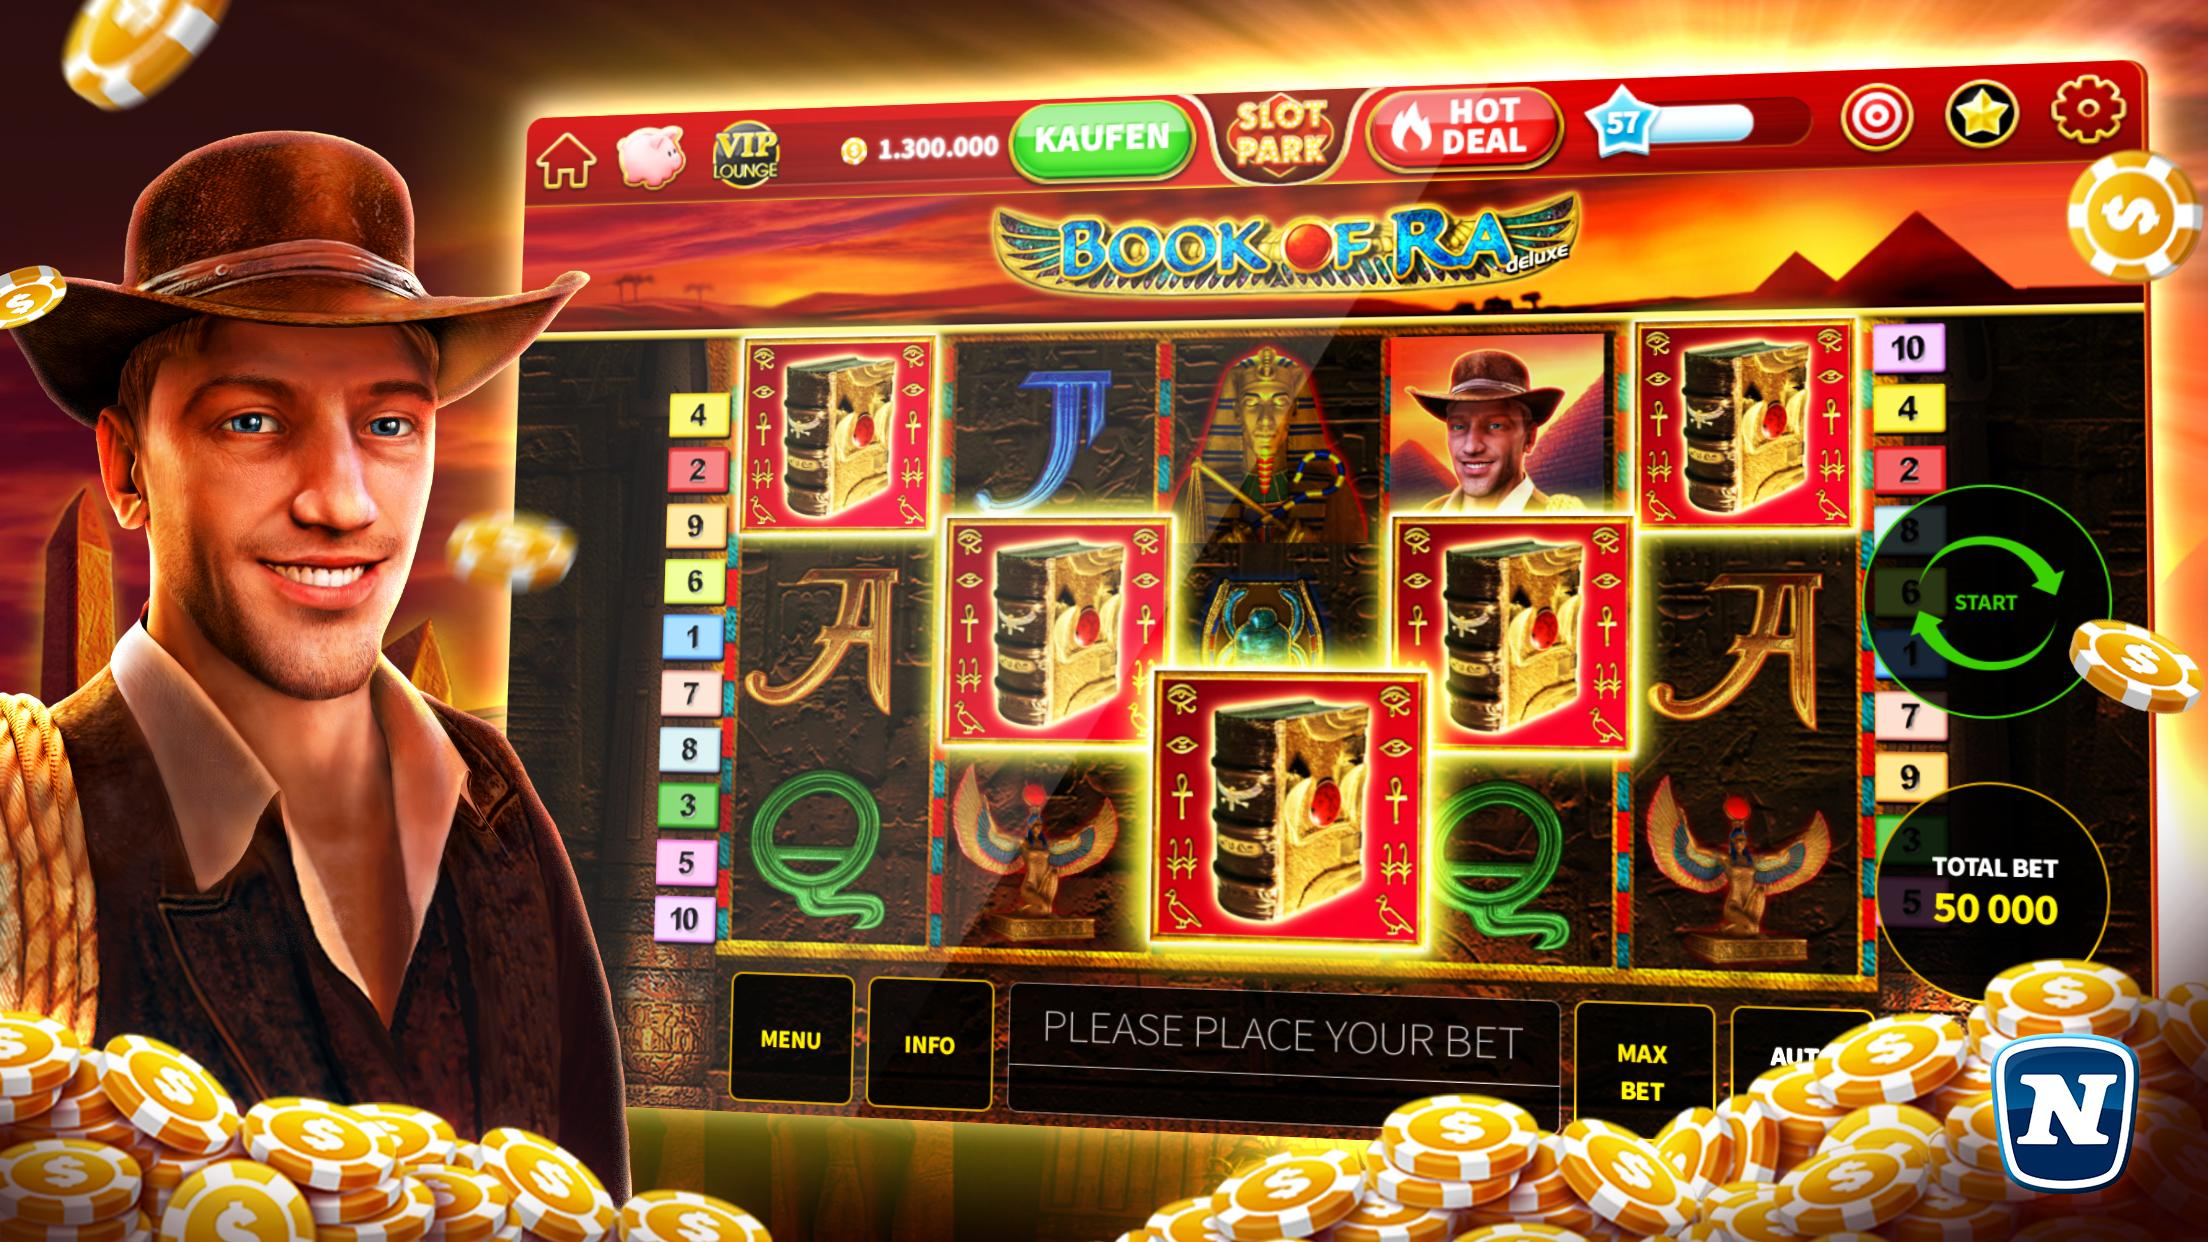 Slotpark Online Casino Games & Free Slot Machine 3.21.1 Screenshot 13